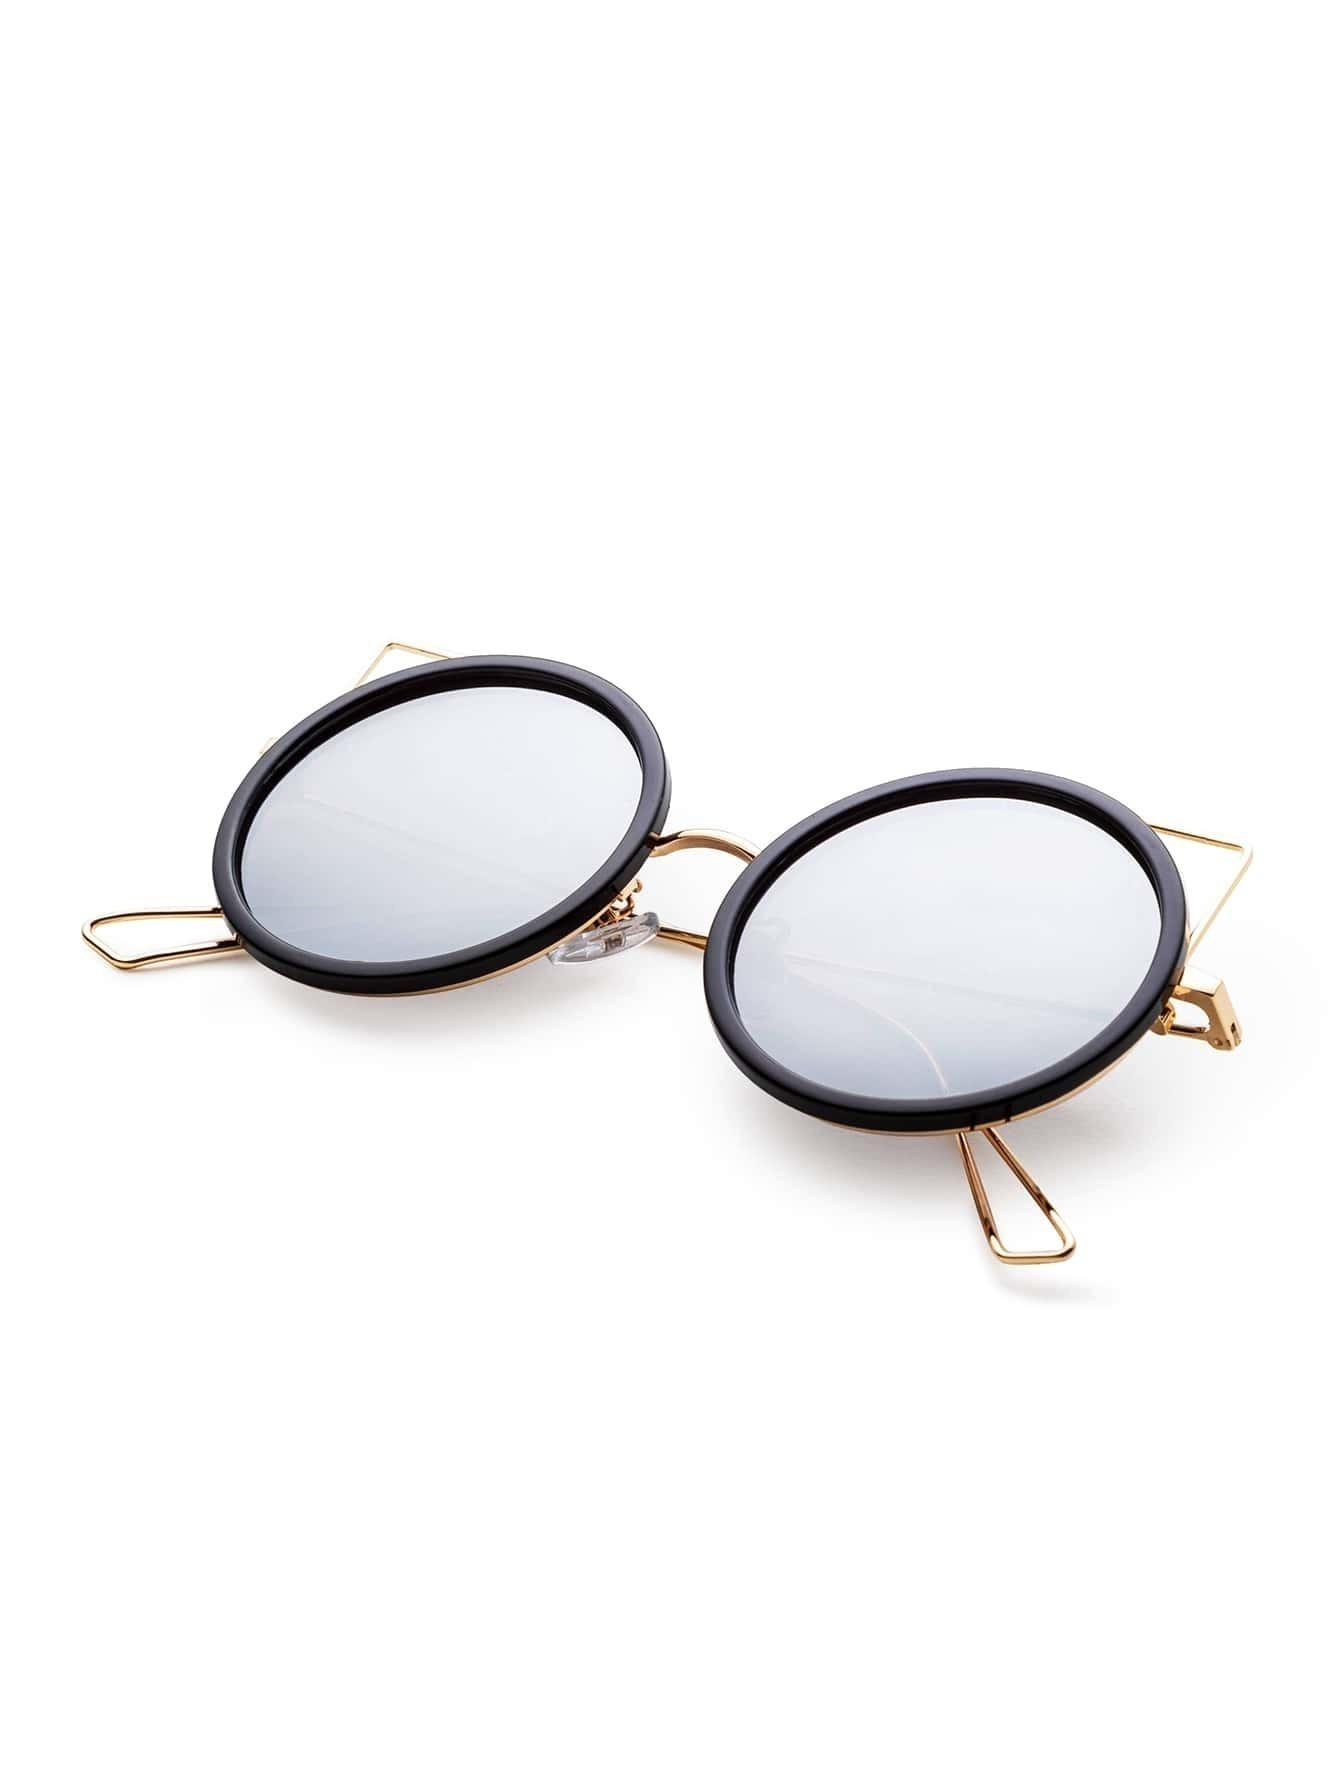 Black And Gold Frame Silver Lens Round Design Sunglasses